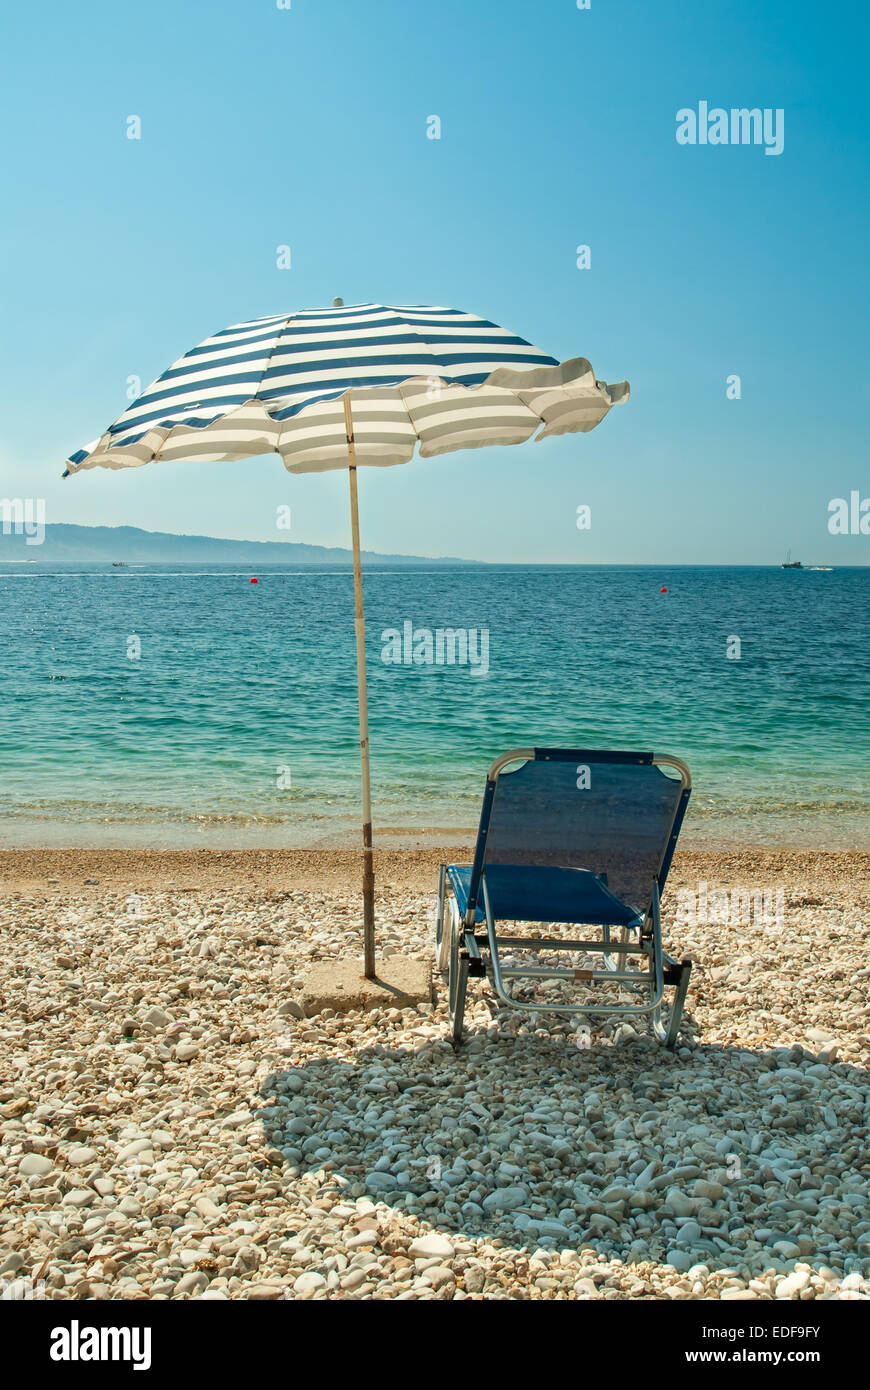 Sunbeds and umbrella on the beach with clear water - Stock Image